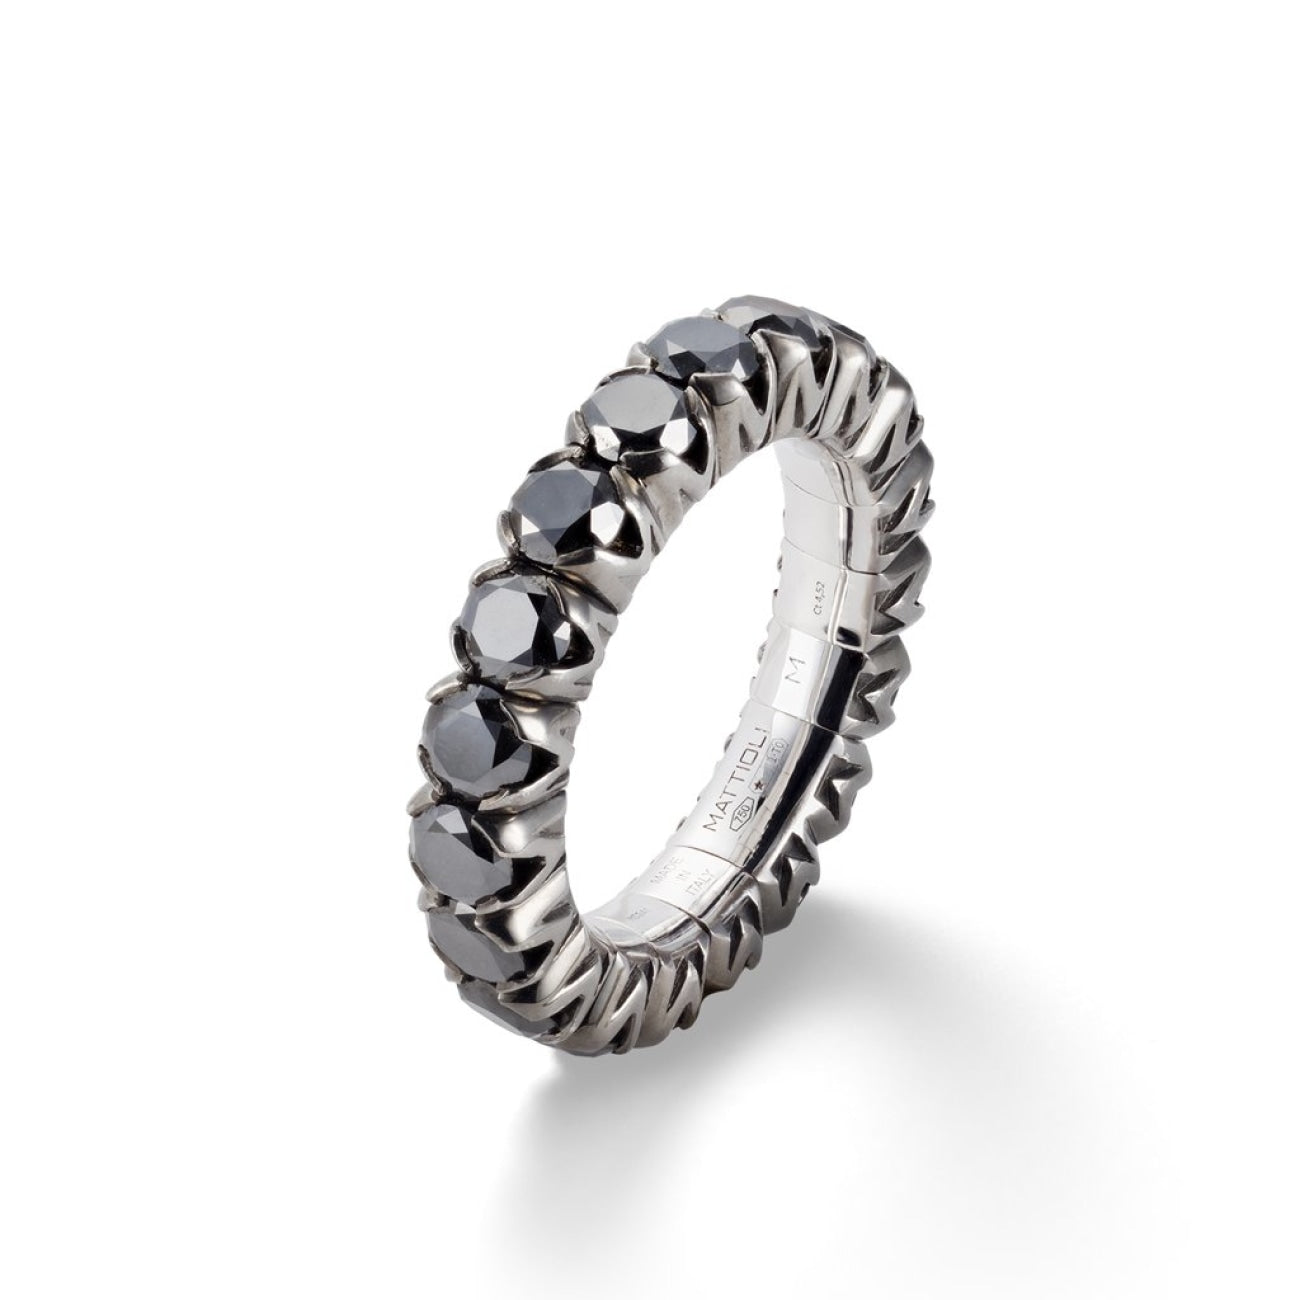 Mattioli Jewelry - Xband Expandable Ring in 18kt White Gold and Black Diamonds | Manfredi Jewels